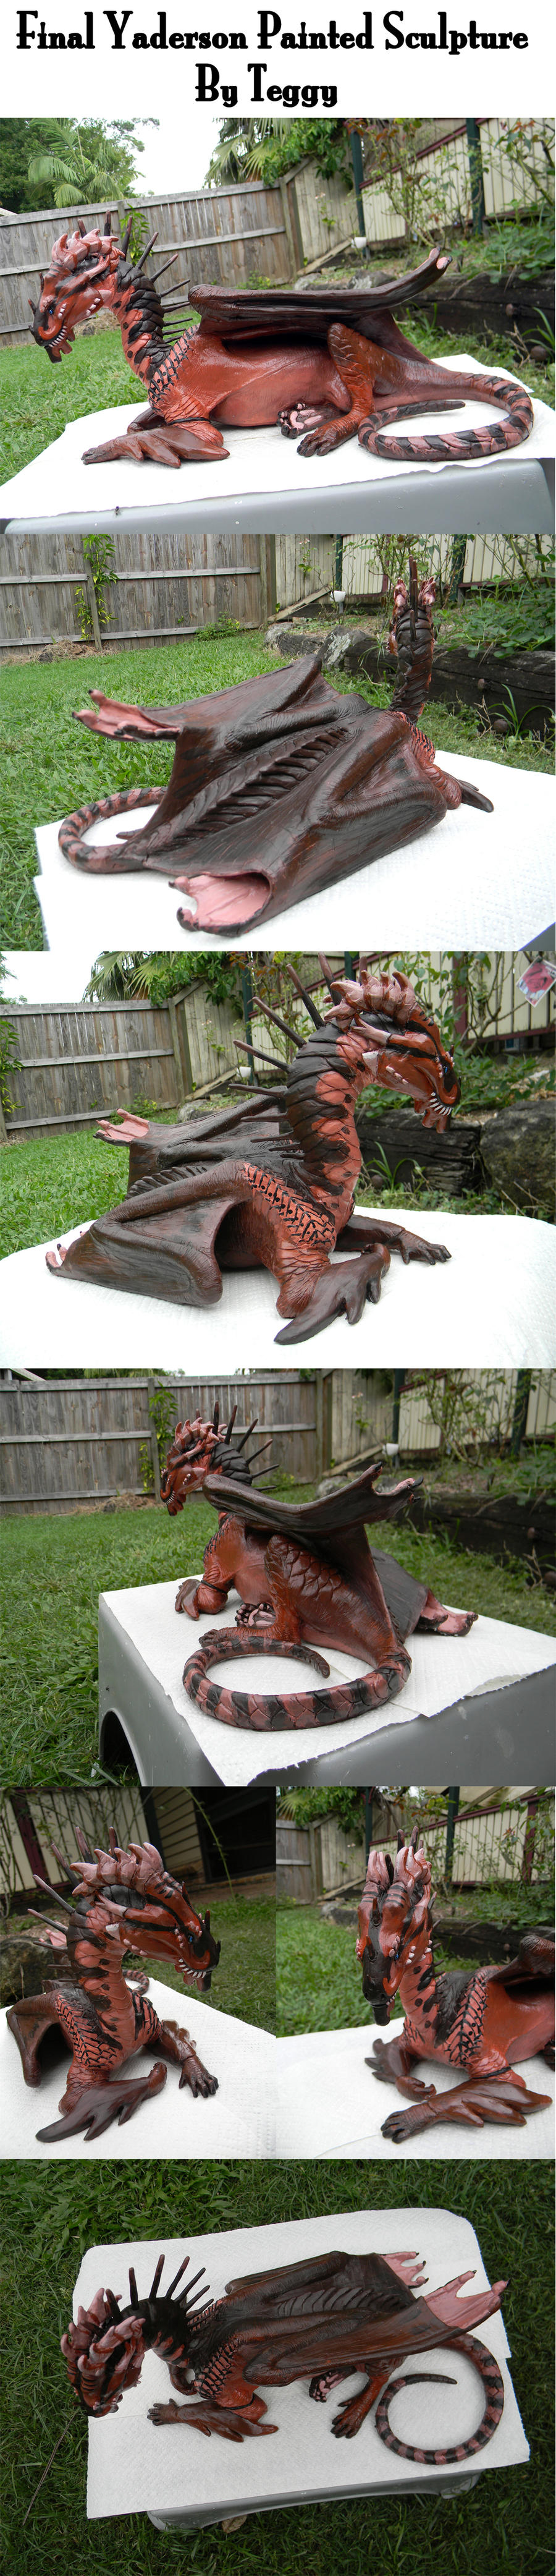 Final Yaderson Sculpture by Teggy